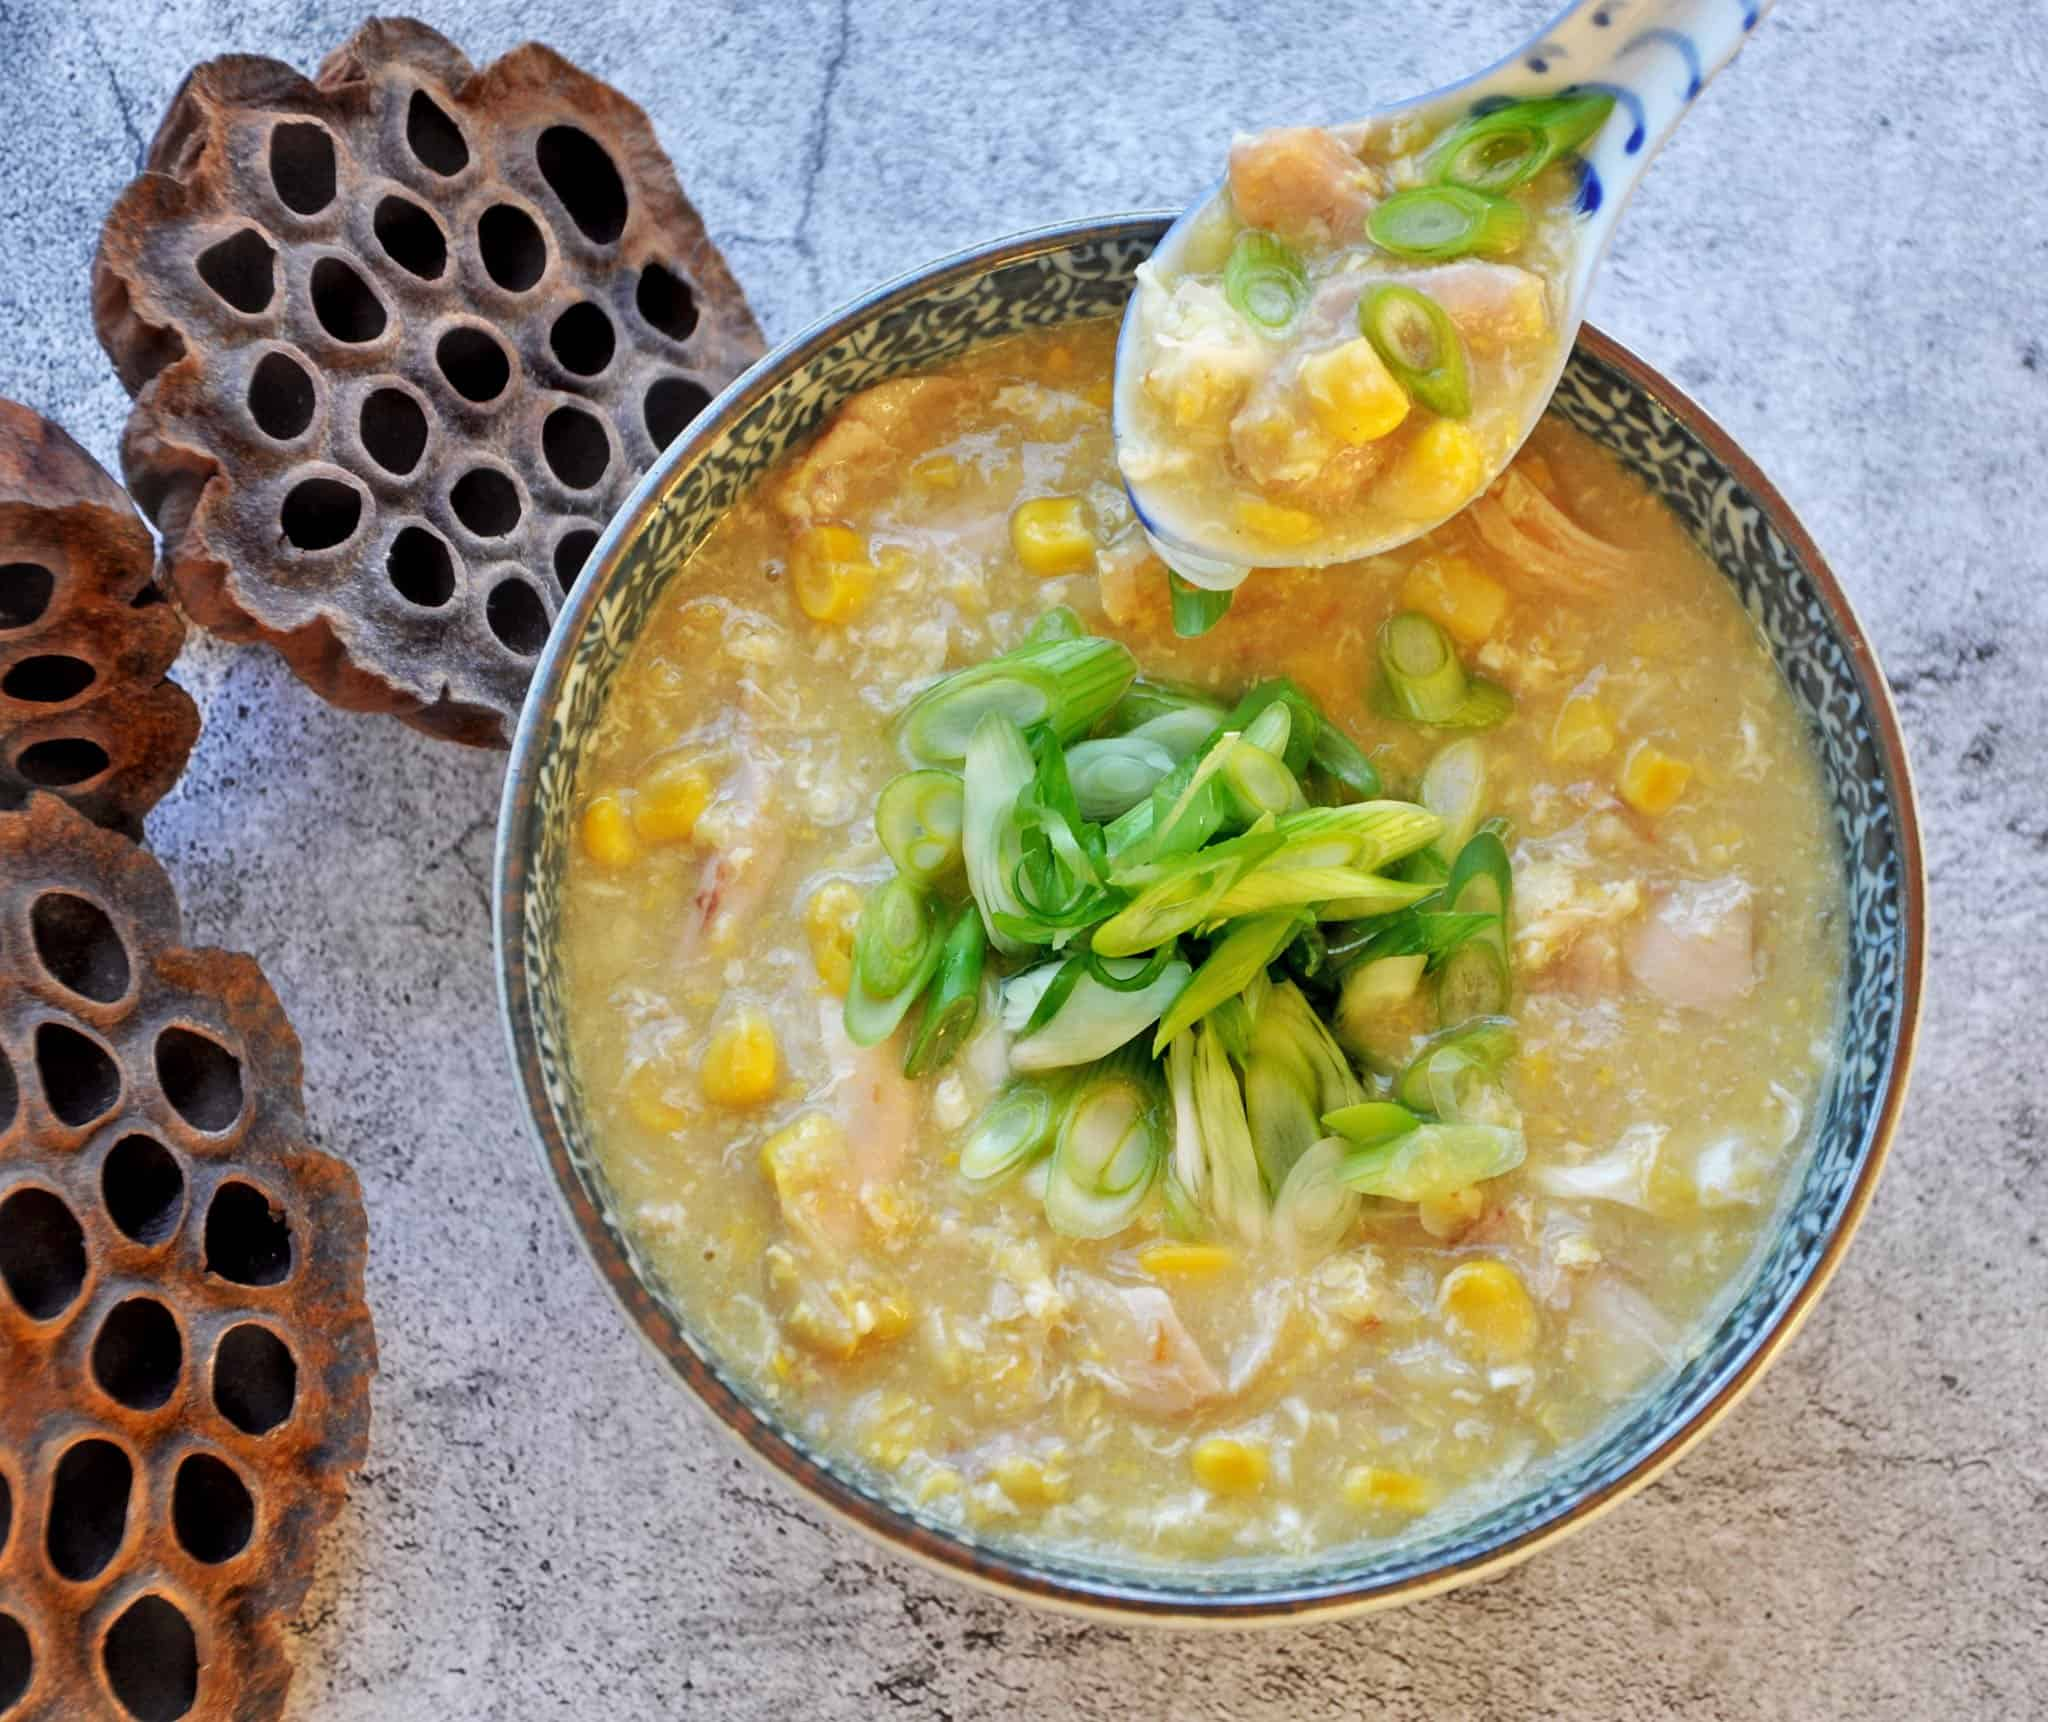 CHICKEN AND SWEET CORN SOUP WITH SHALLOTS SERVED A BLUE BOWL WITH SPOON DIPPING INTO SOUP